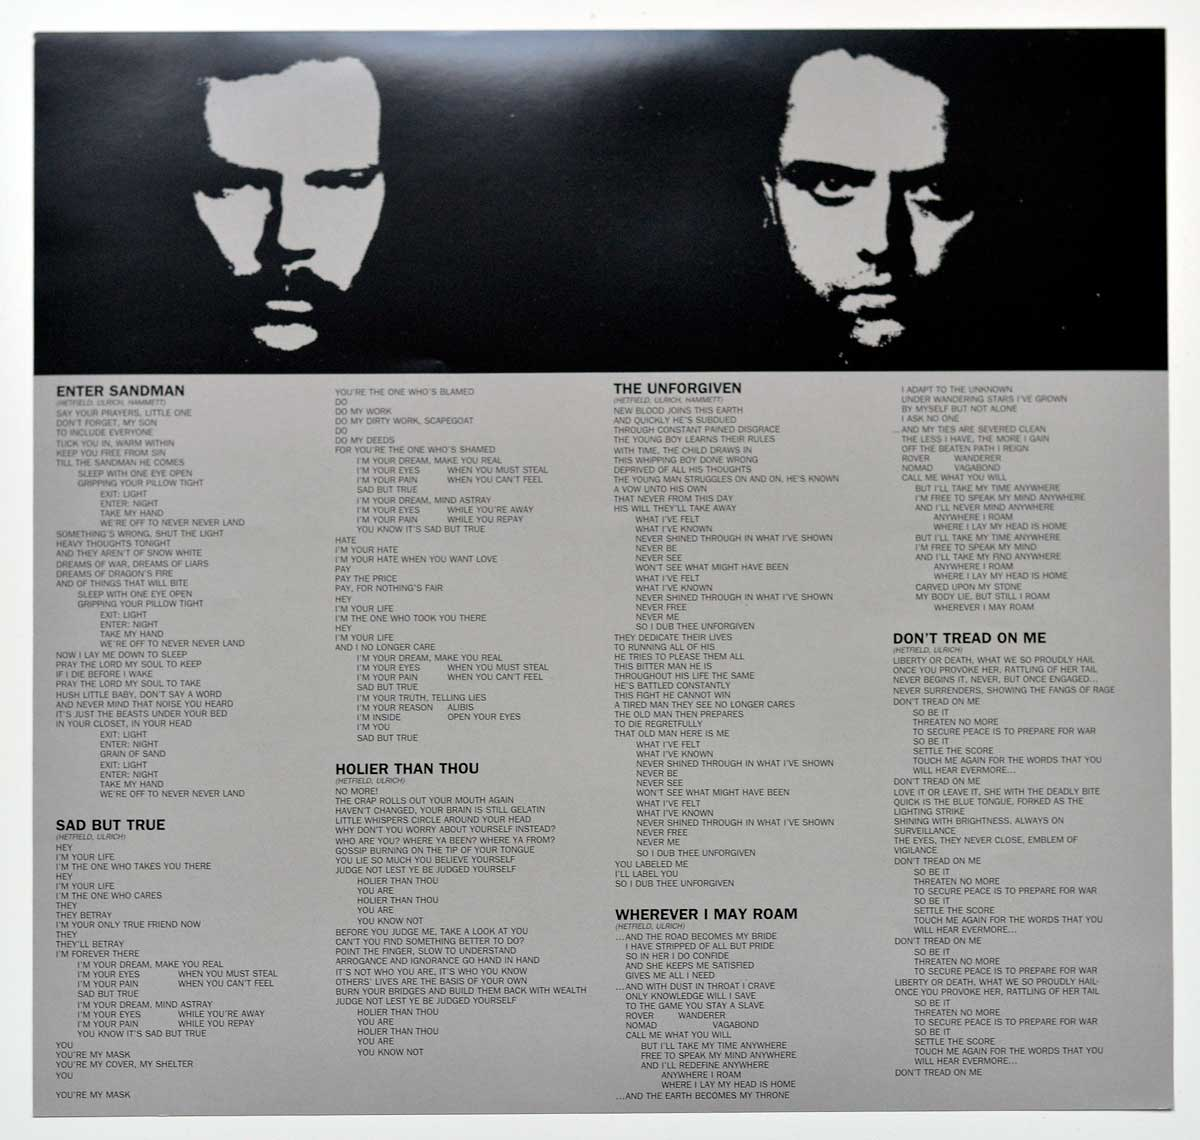 Photo of album back cover METALLICA The Black Album 2LP 180 Grams Audiophile Blackened Records